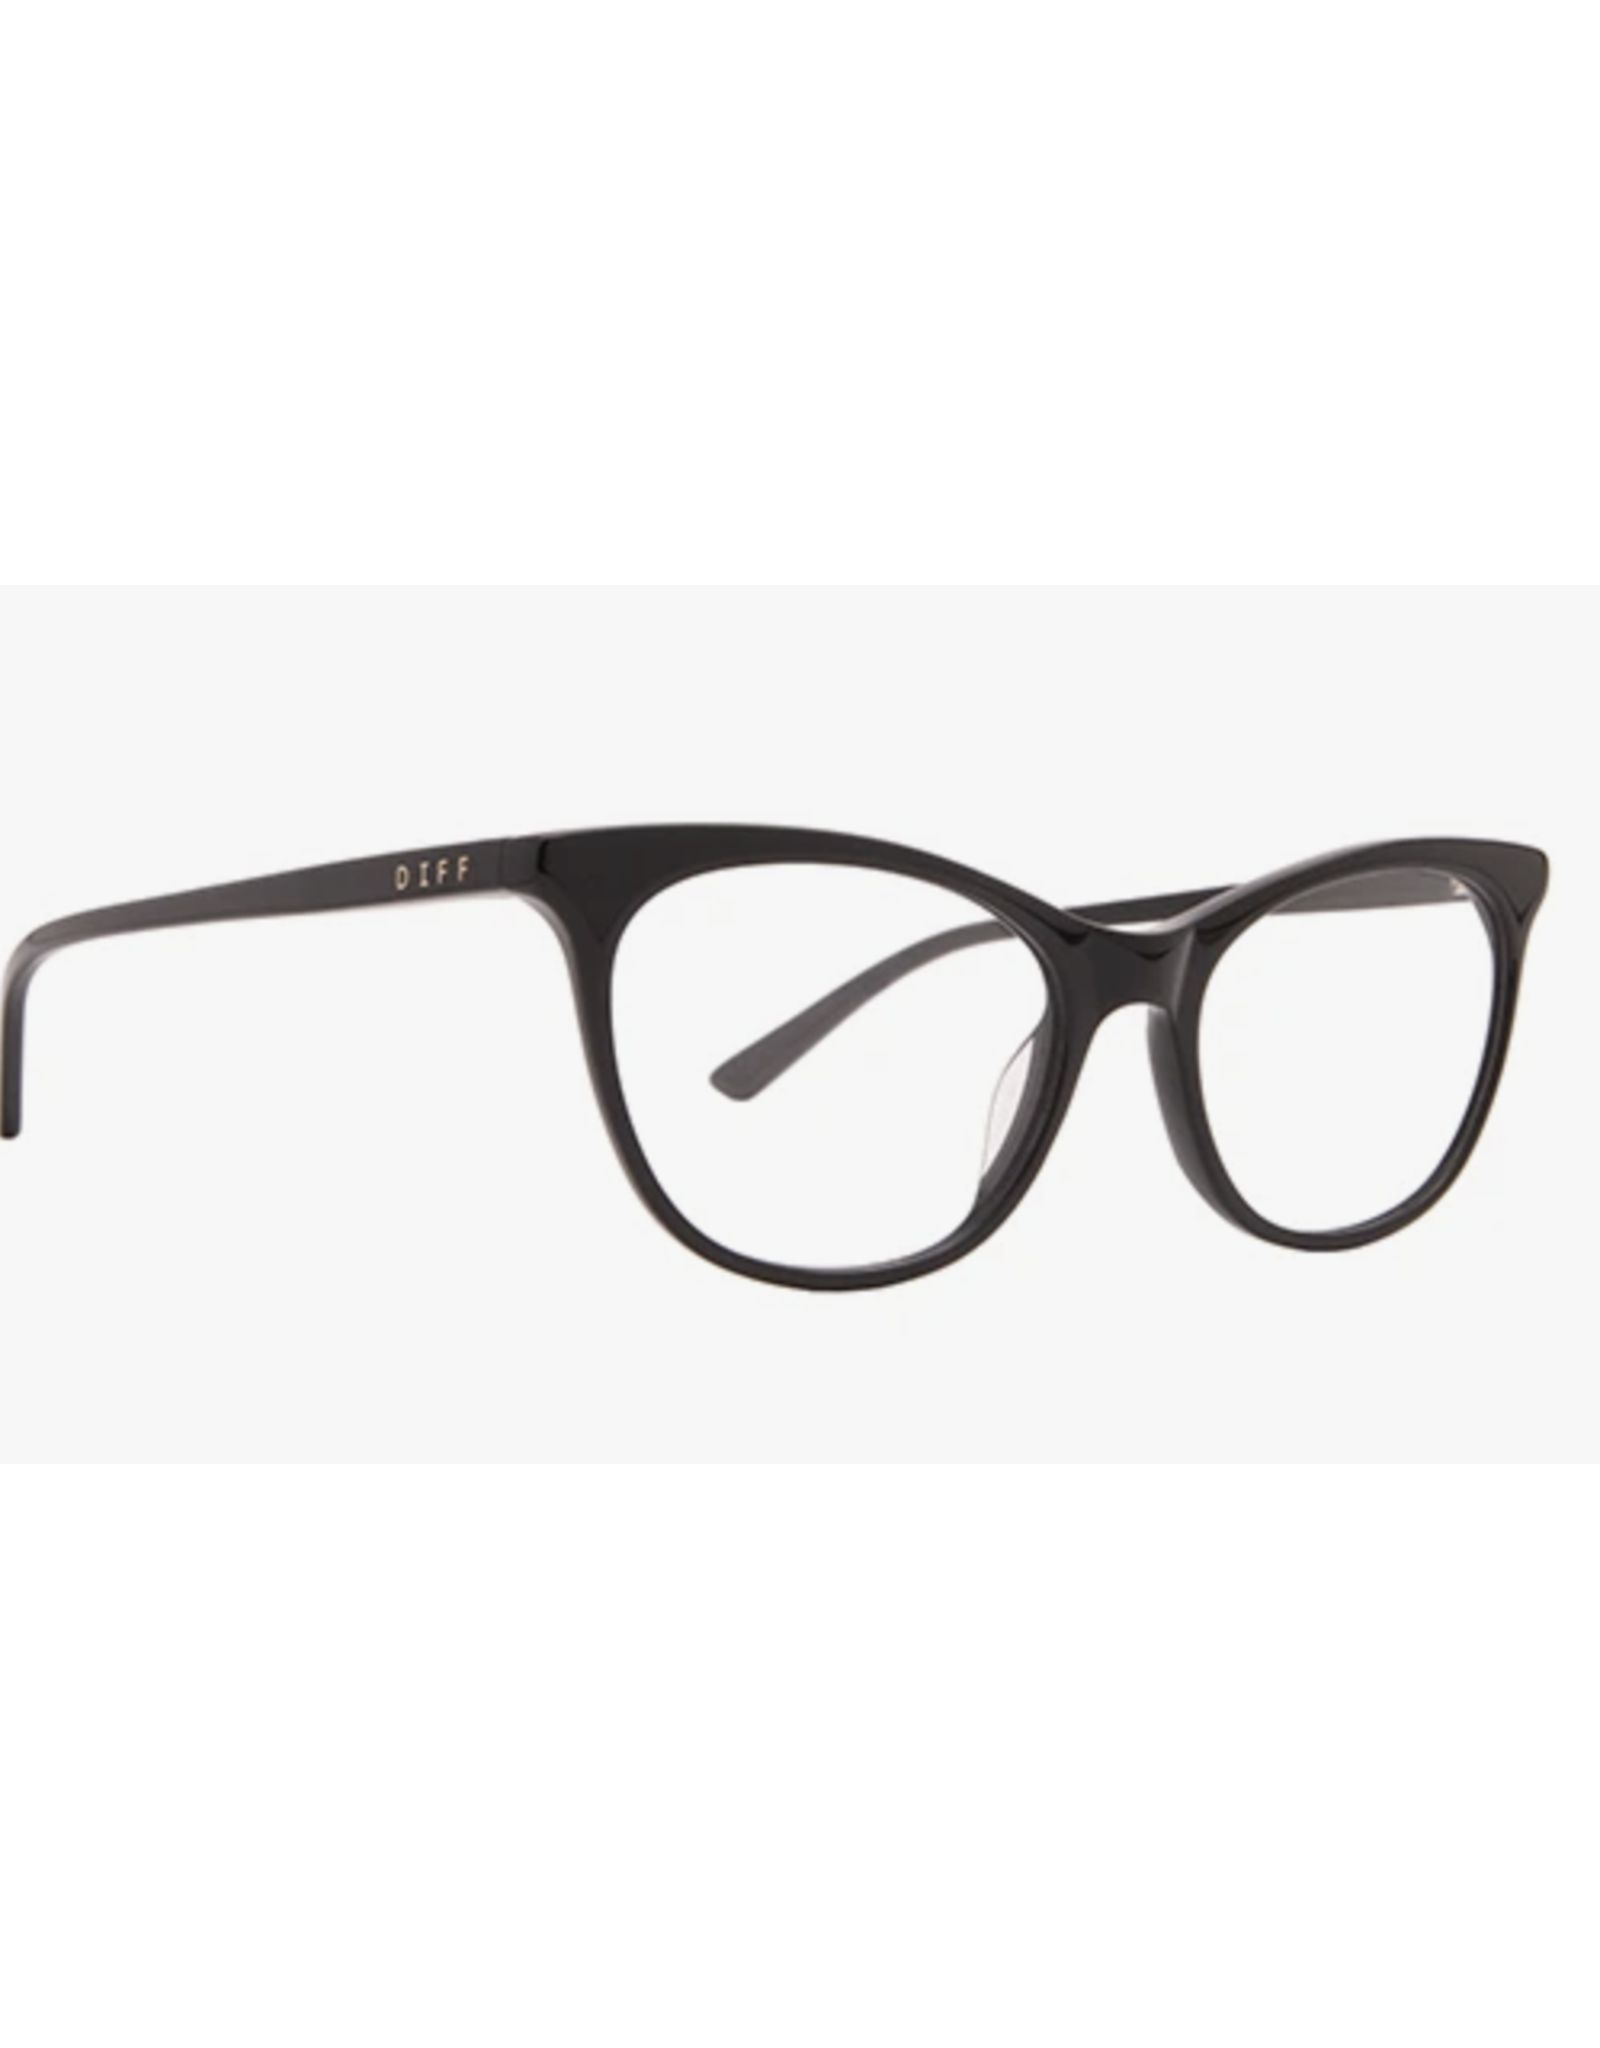 Diff Eyewear Jade Blue Light